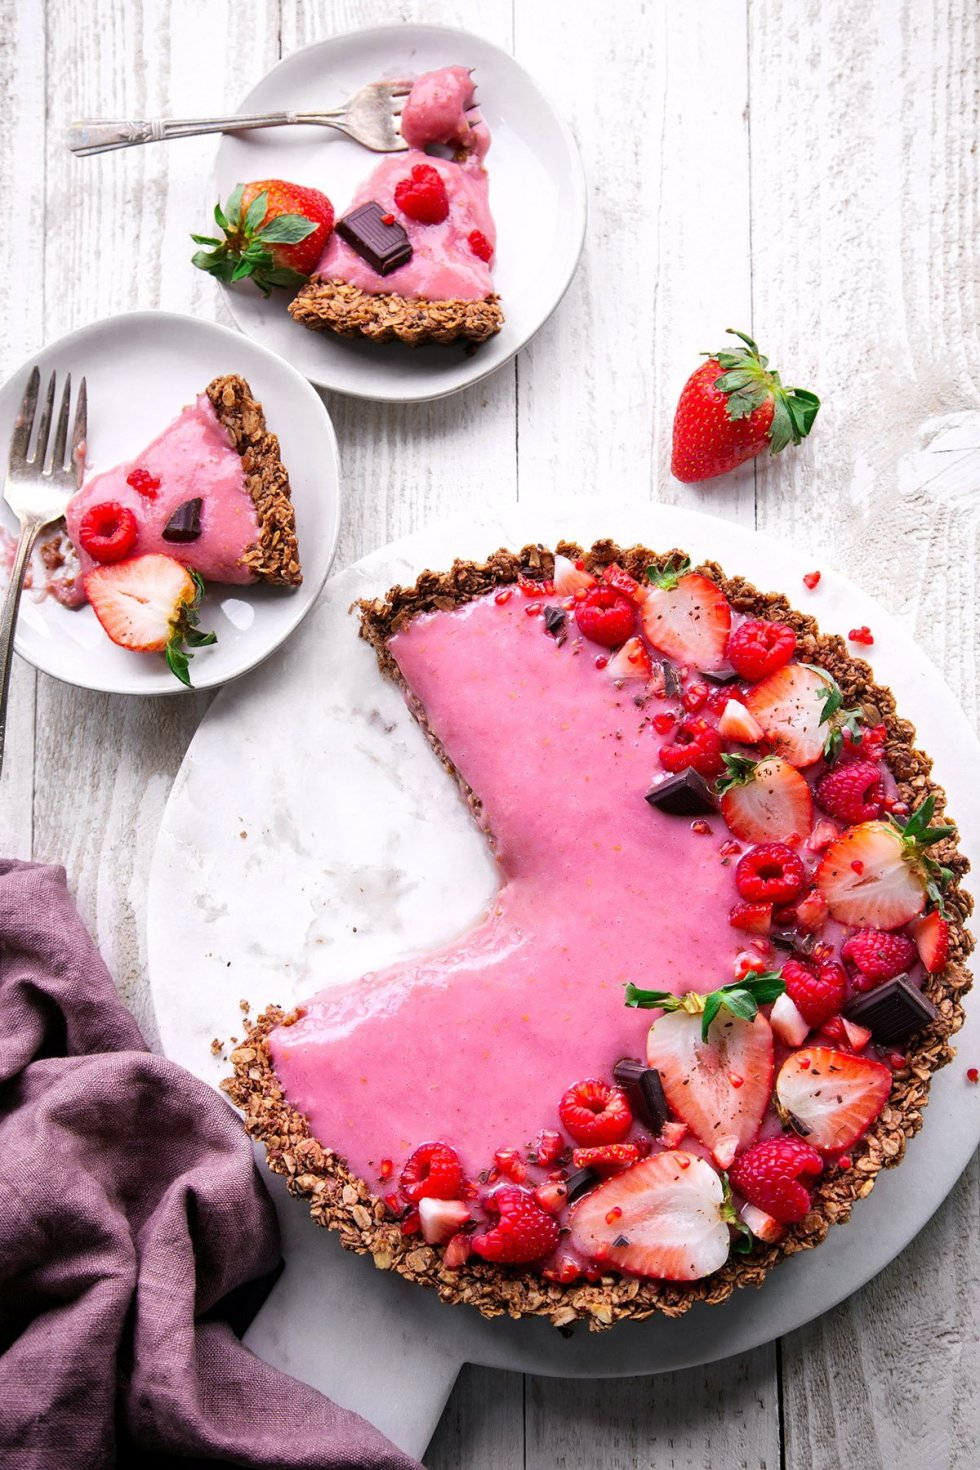 Chocolate Granola Breakfast Tart with Yogurt and Berries | Free of gluten, dairy, and refined sugar, plus vegan friendly!